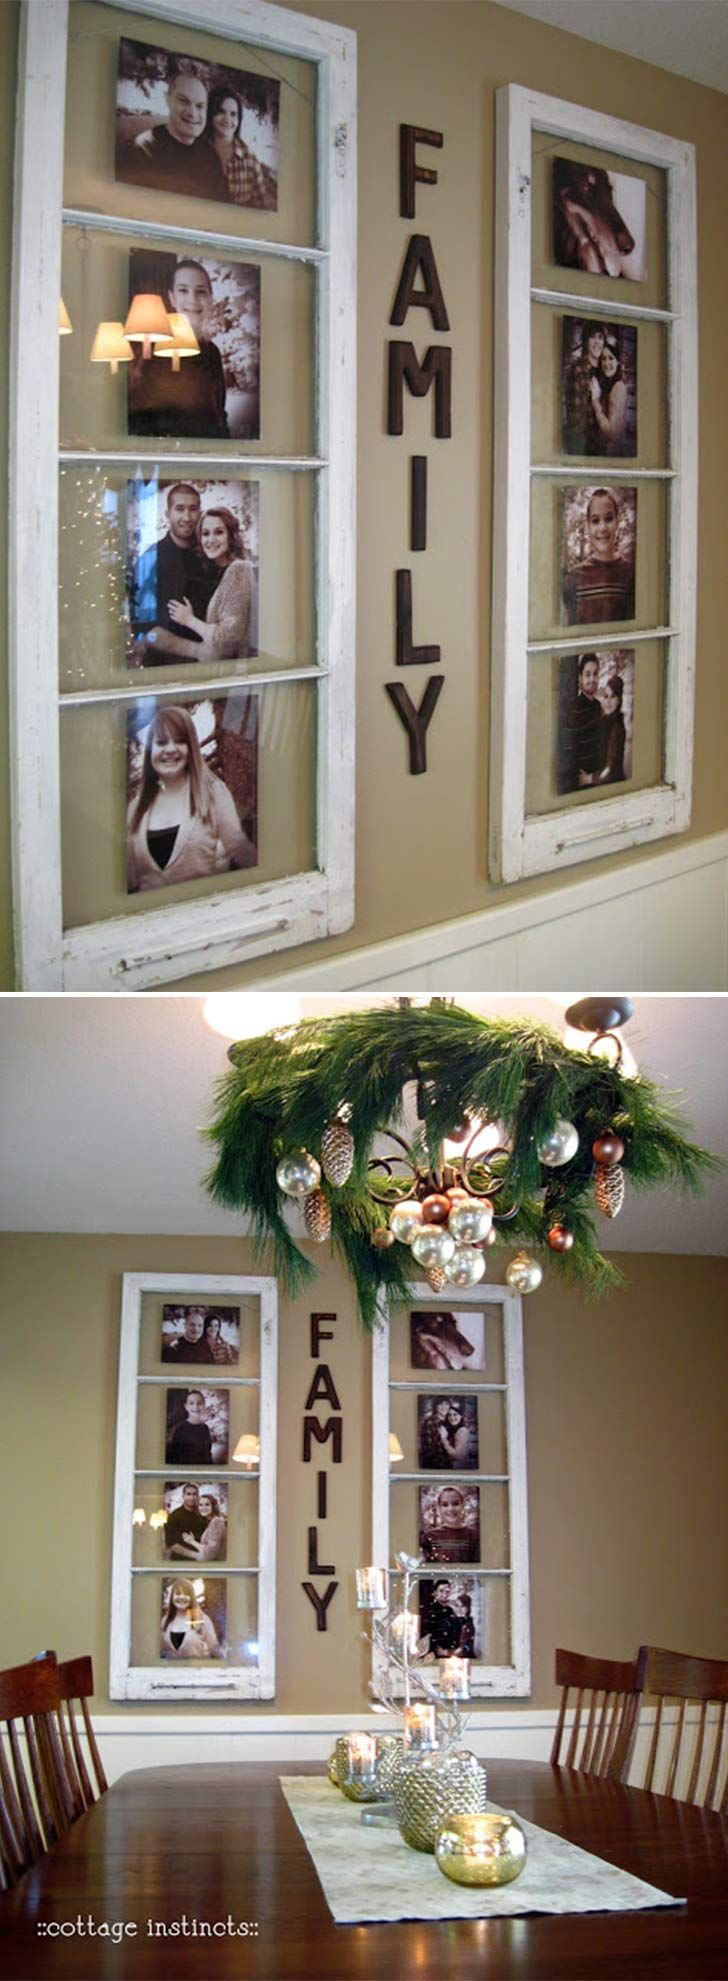 40 amazing diy home decor ideas that wont look diyed - Home Designs Ideas